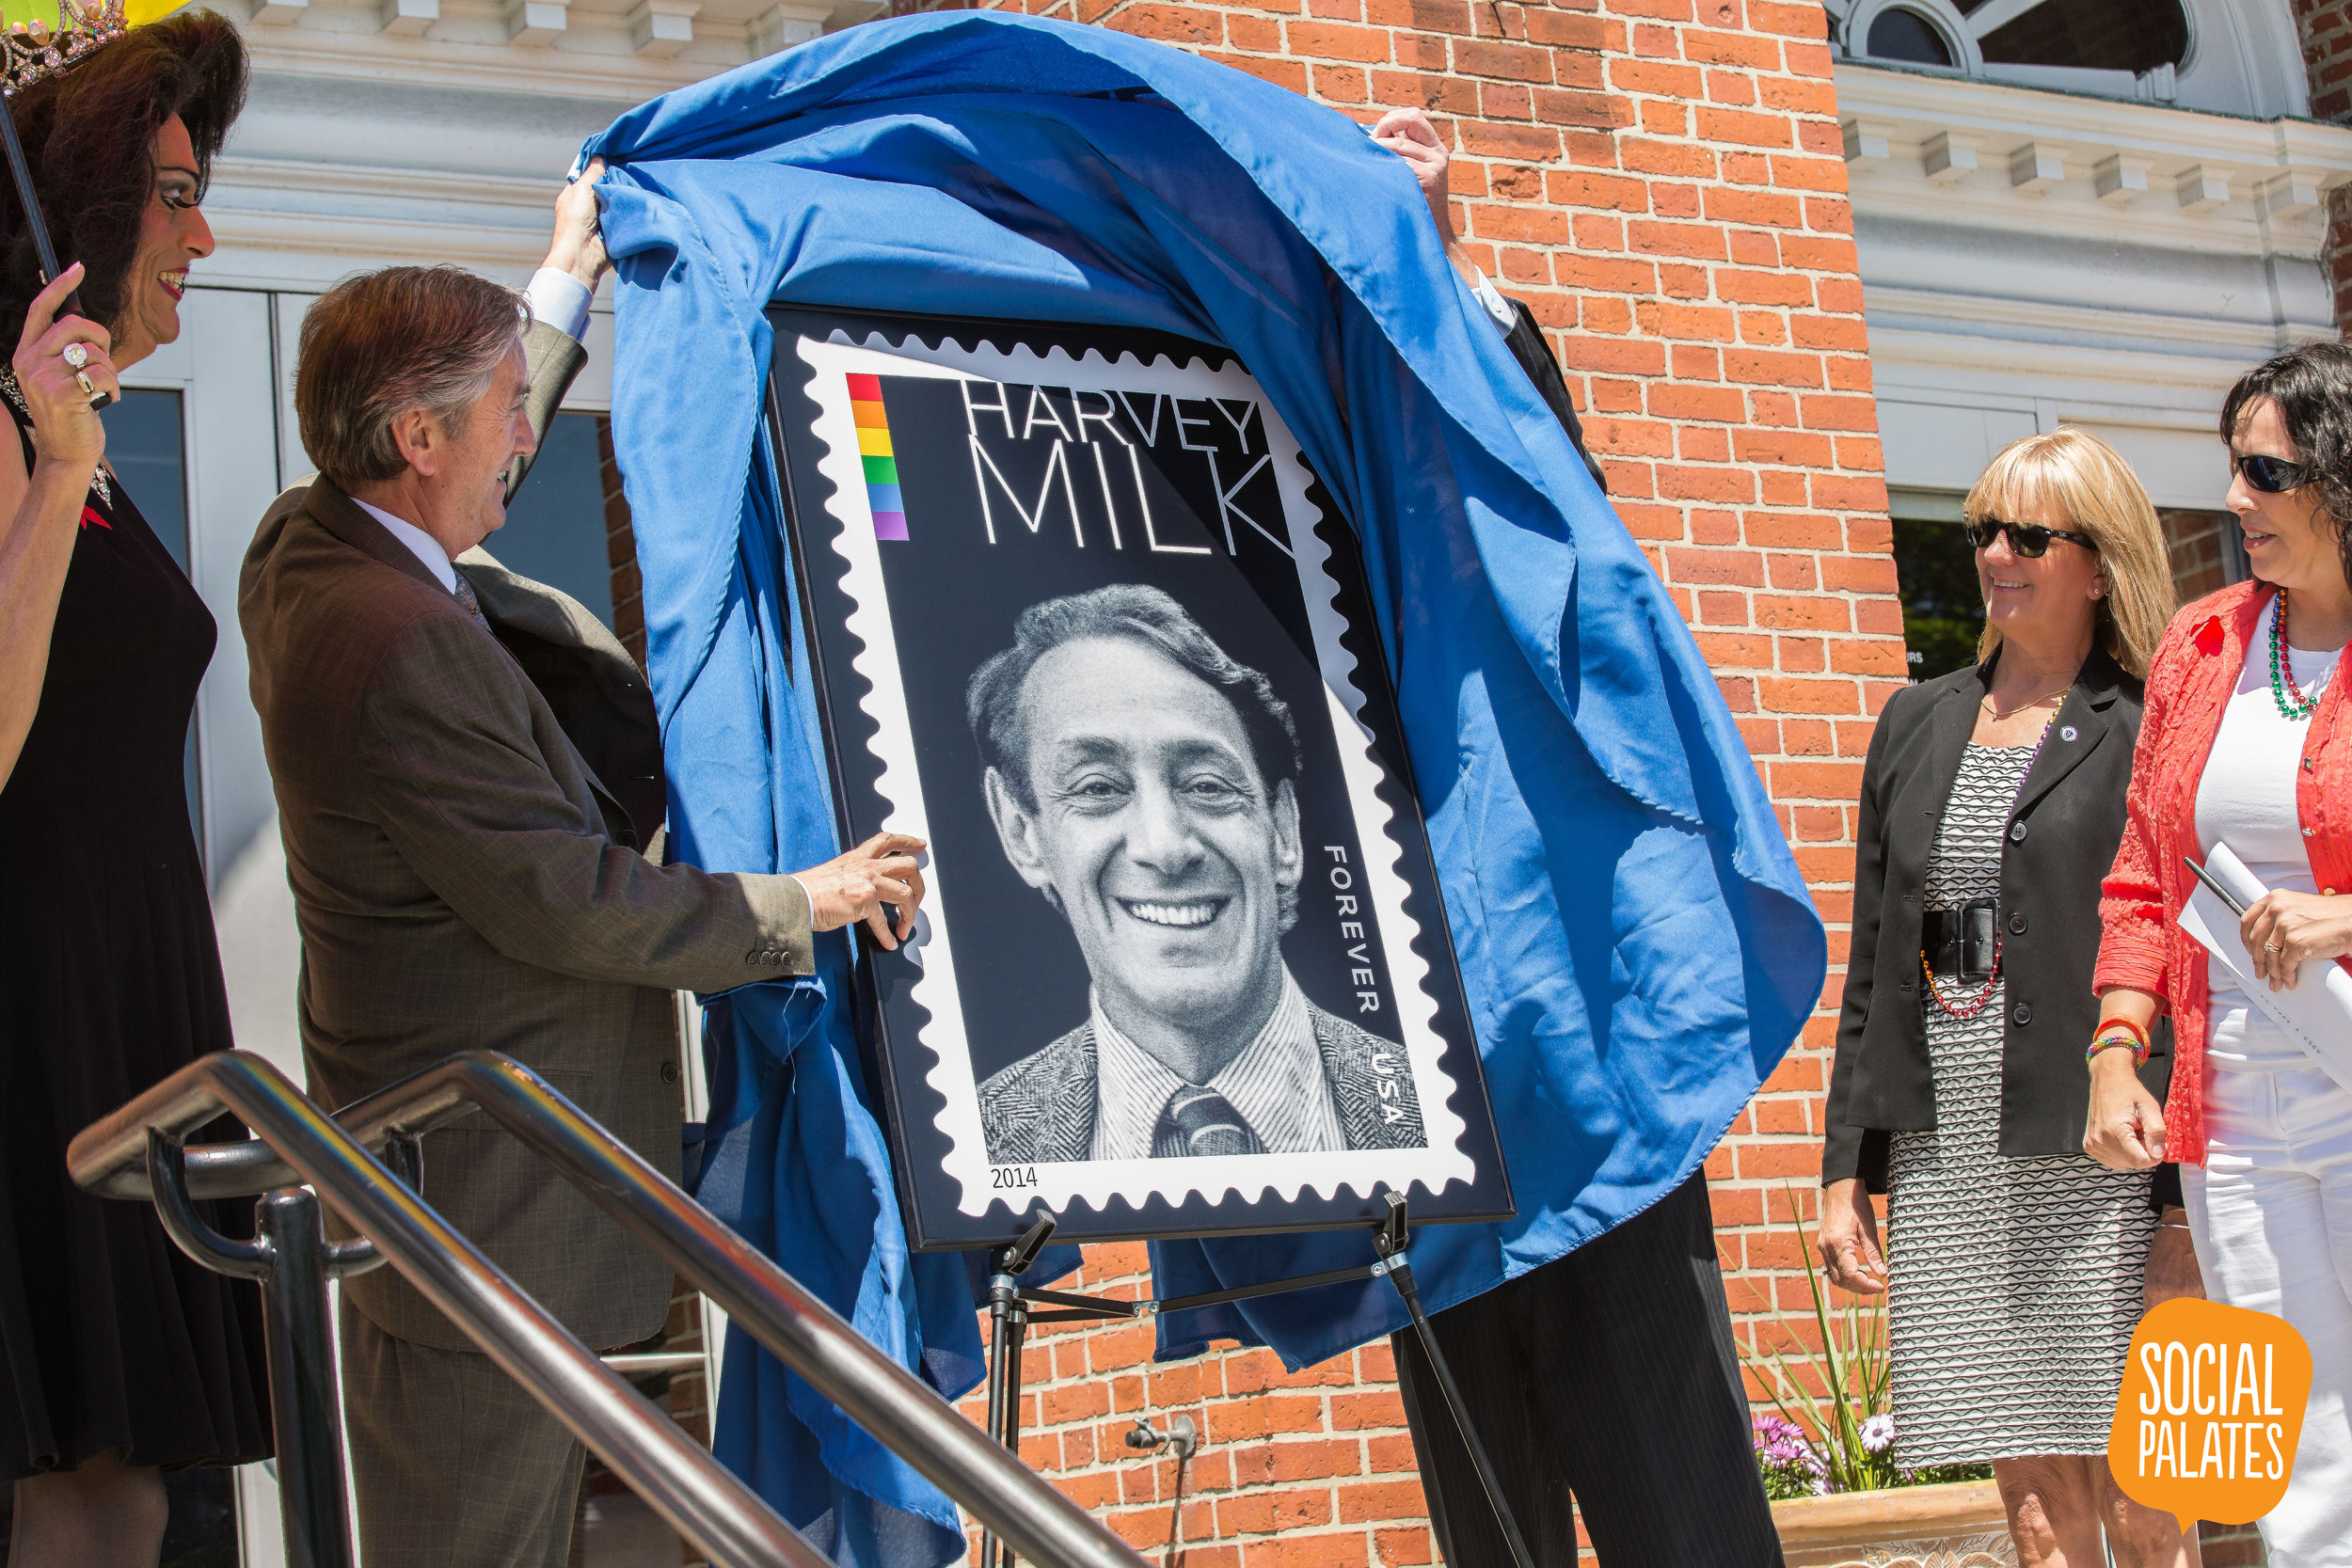 Congressman John Tierney and Salem Postmaster Mark Howell unveil the Harvey Milk Forever Stamp alongside Mayor Kim Driscoll, State Senator Joan Lovely, the Queen of Salem Gigi Gill, and other LGBT activists and supporters on June 1, 2014.